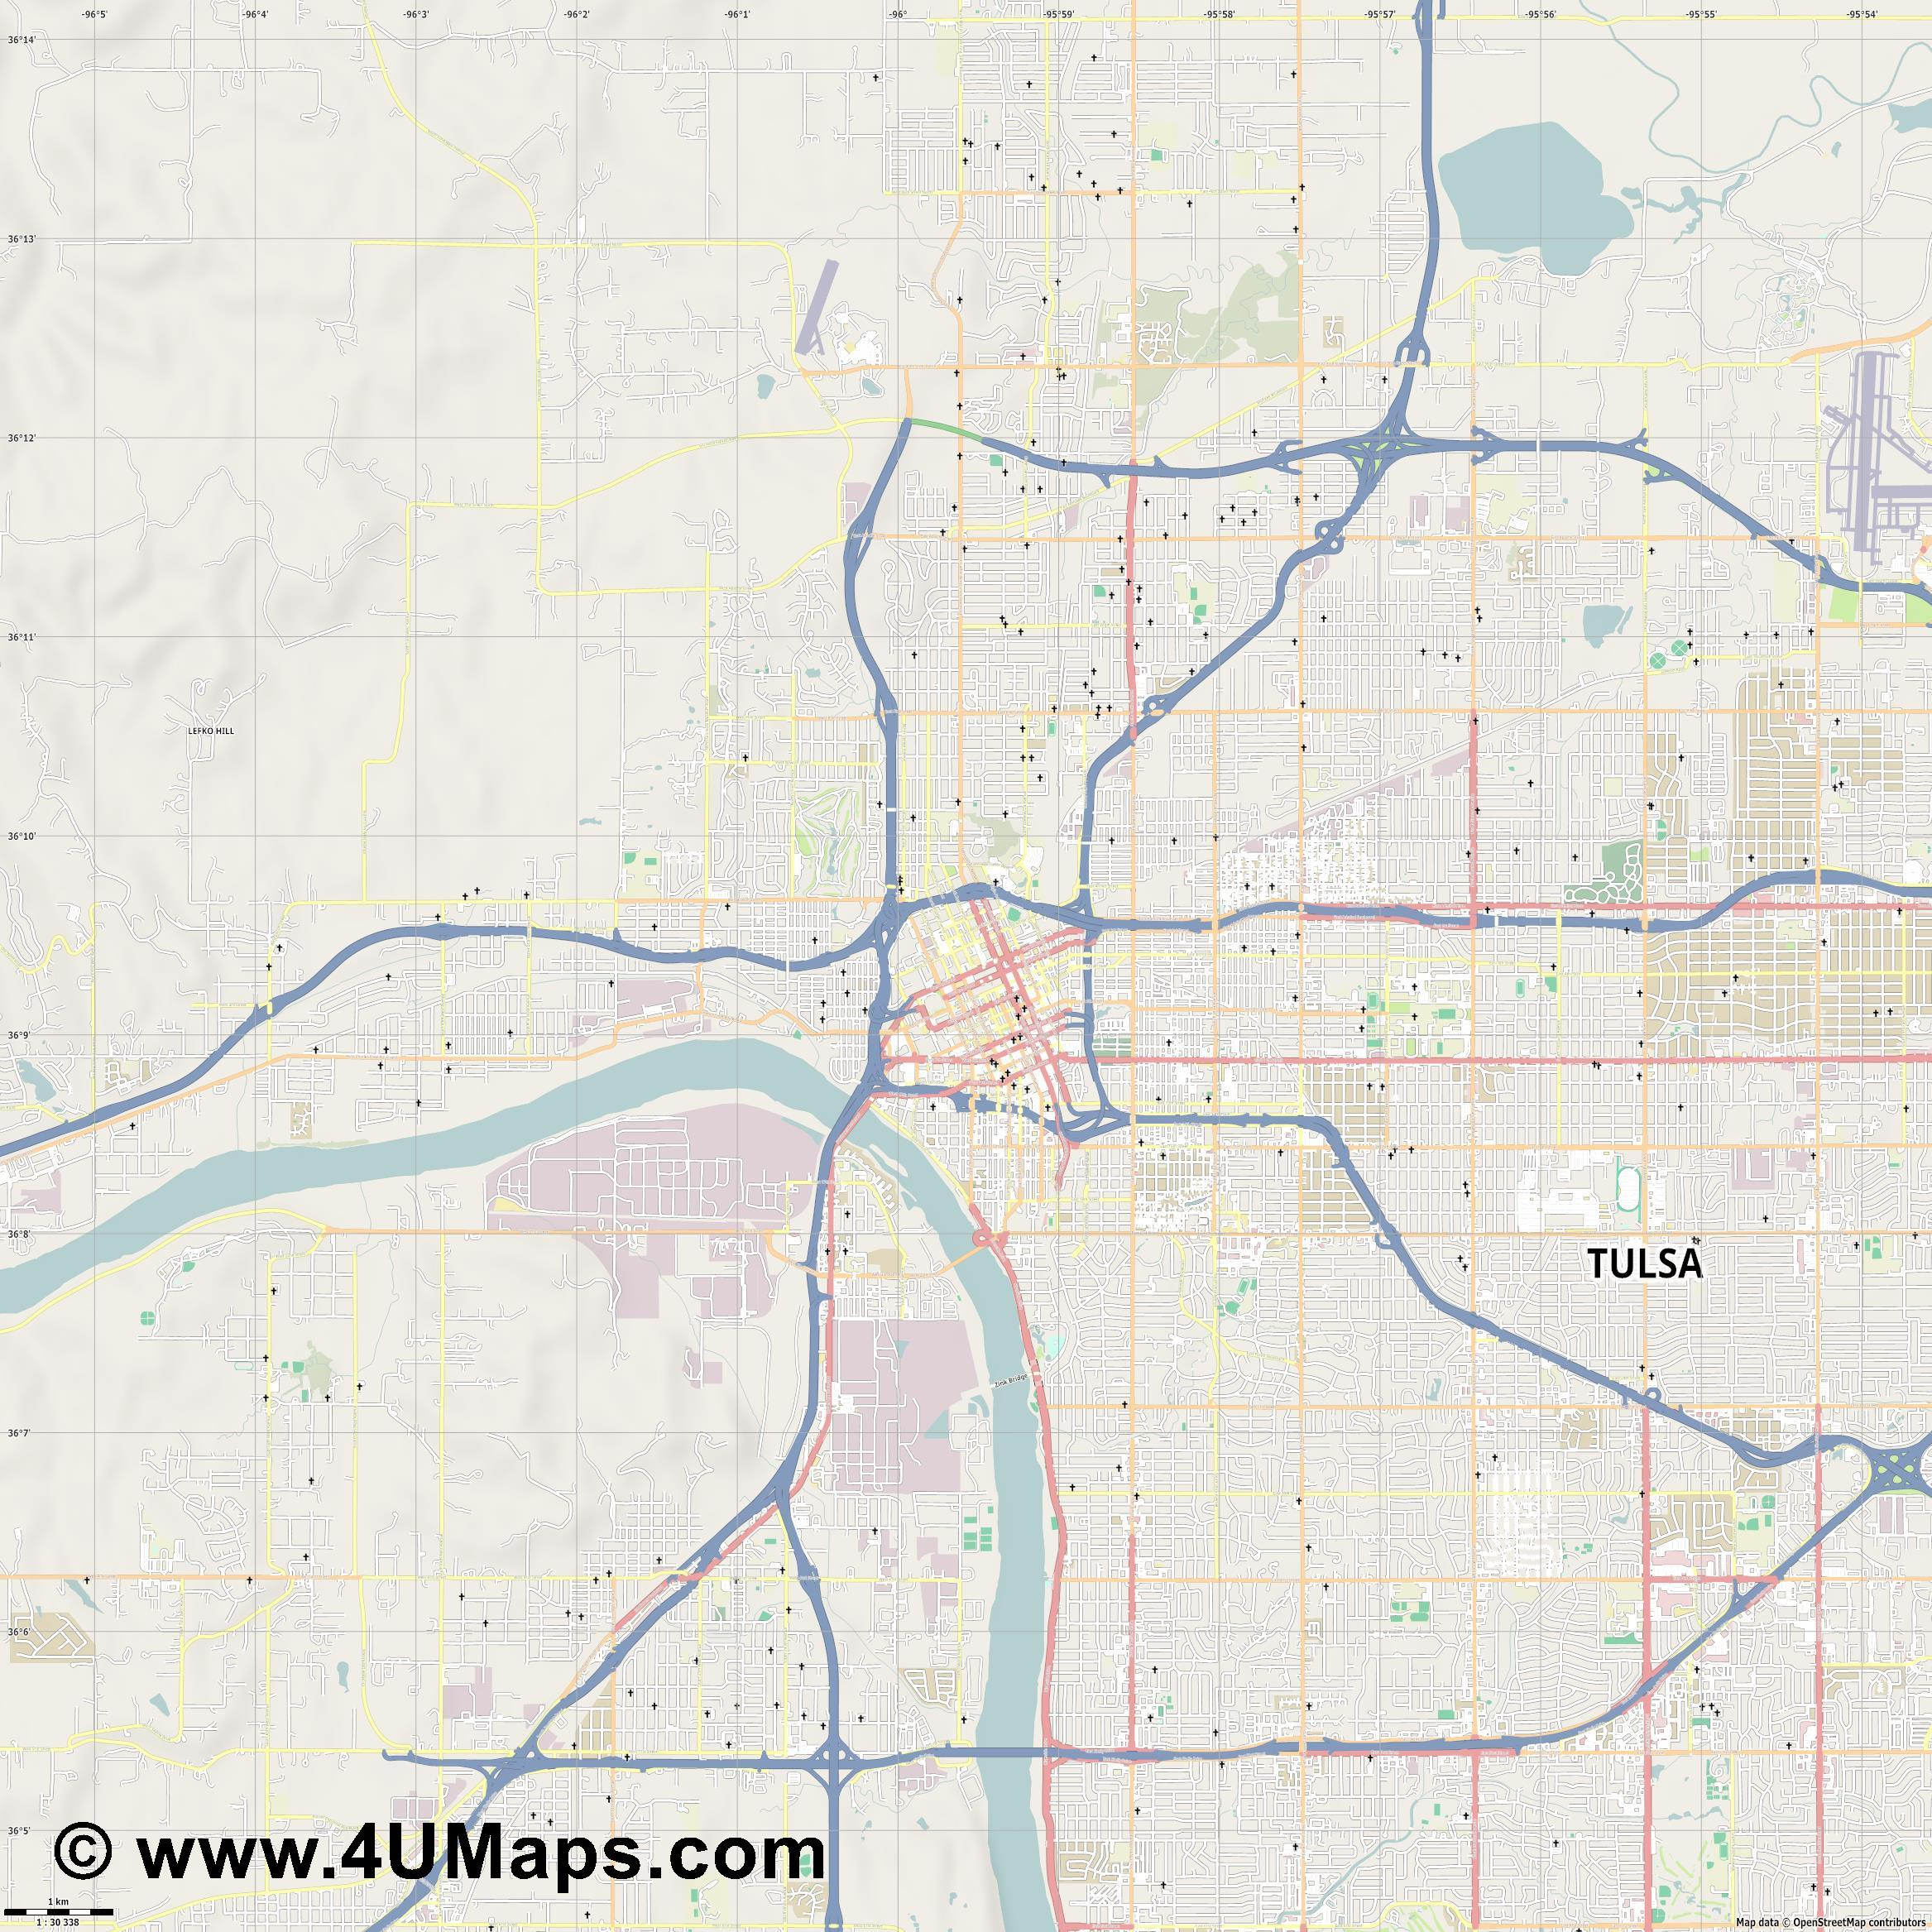 Tulsa  jpg high detail, large area preview vector city map